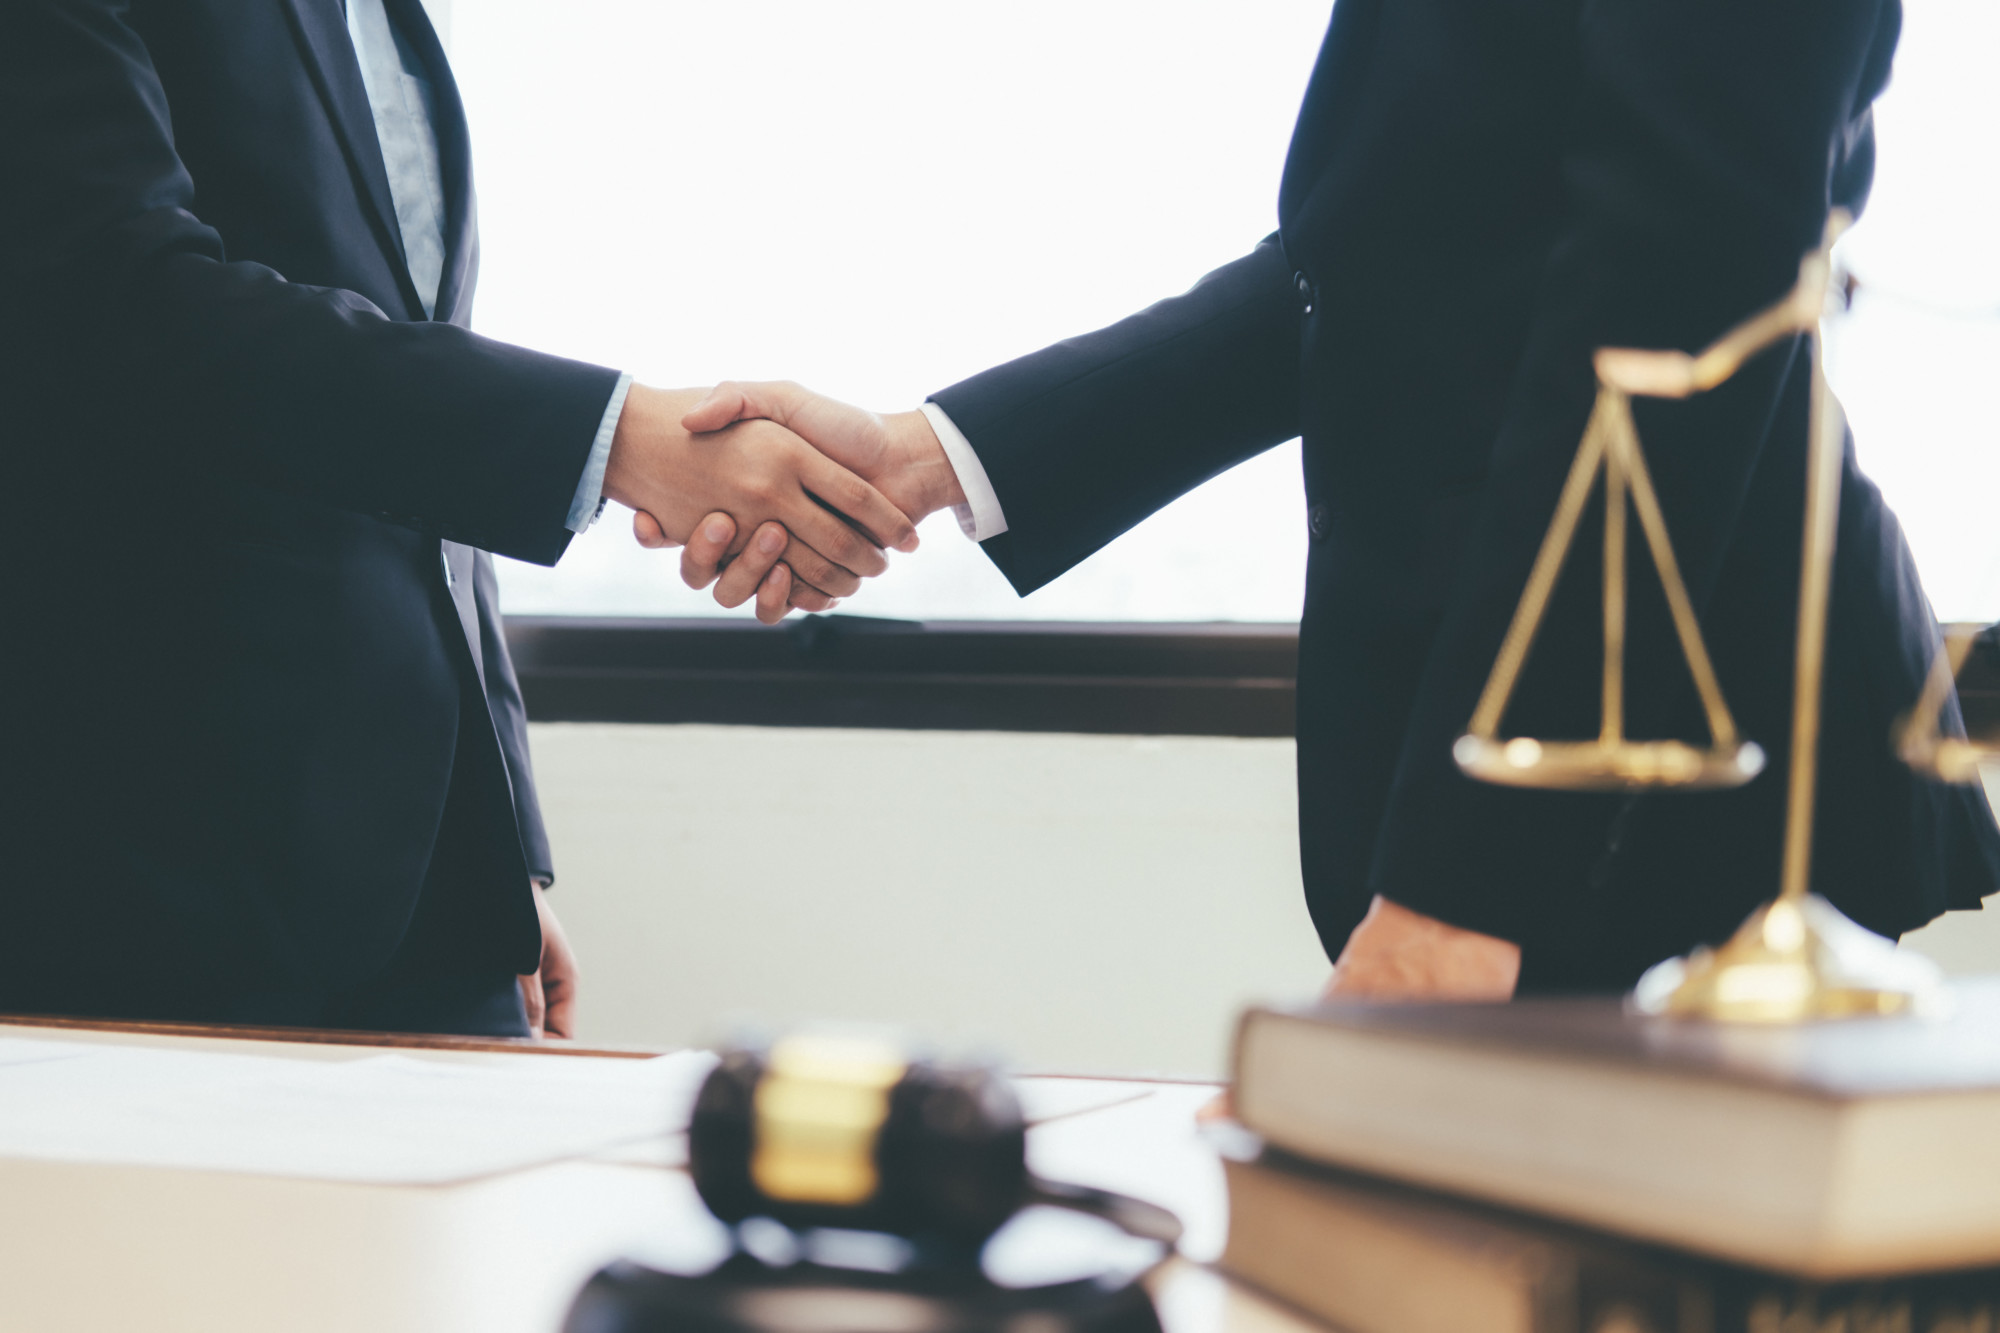 8 Essential Questions to Ask When Looking for an Attorney